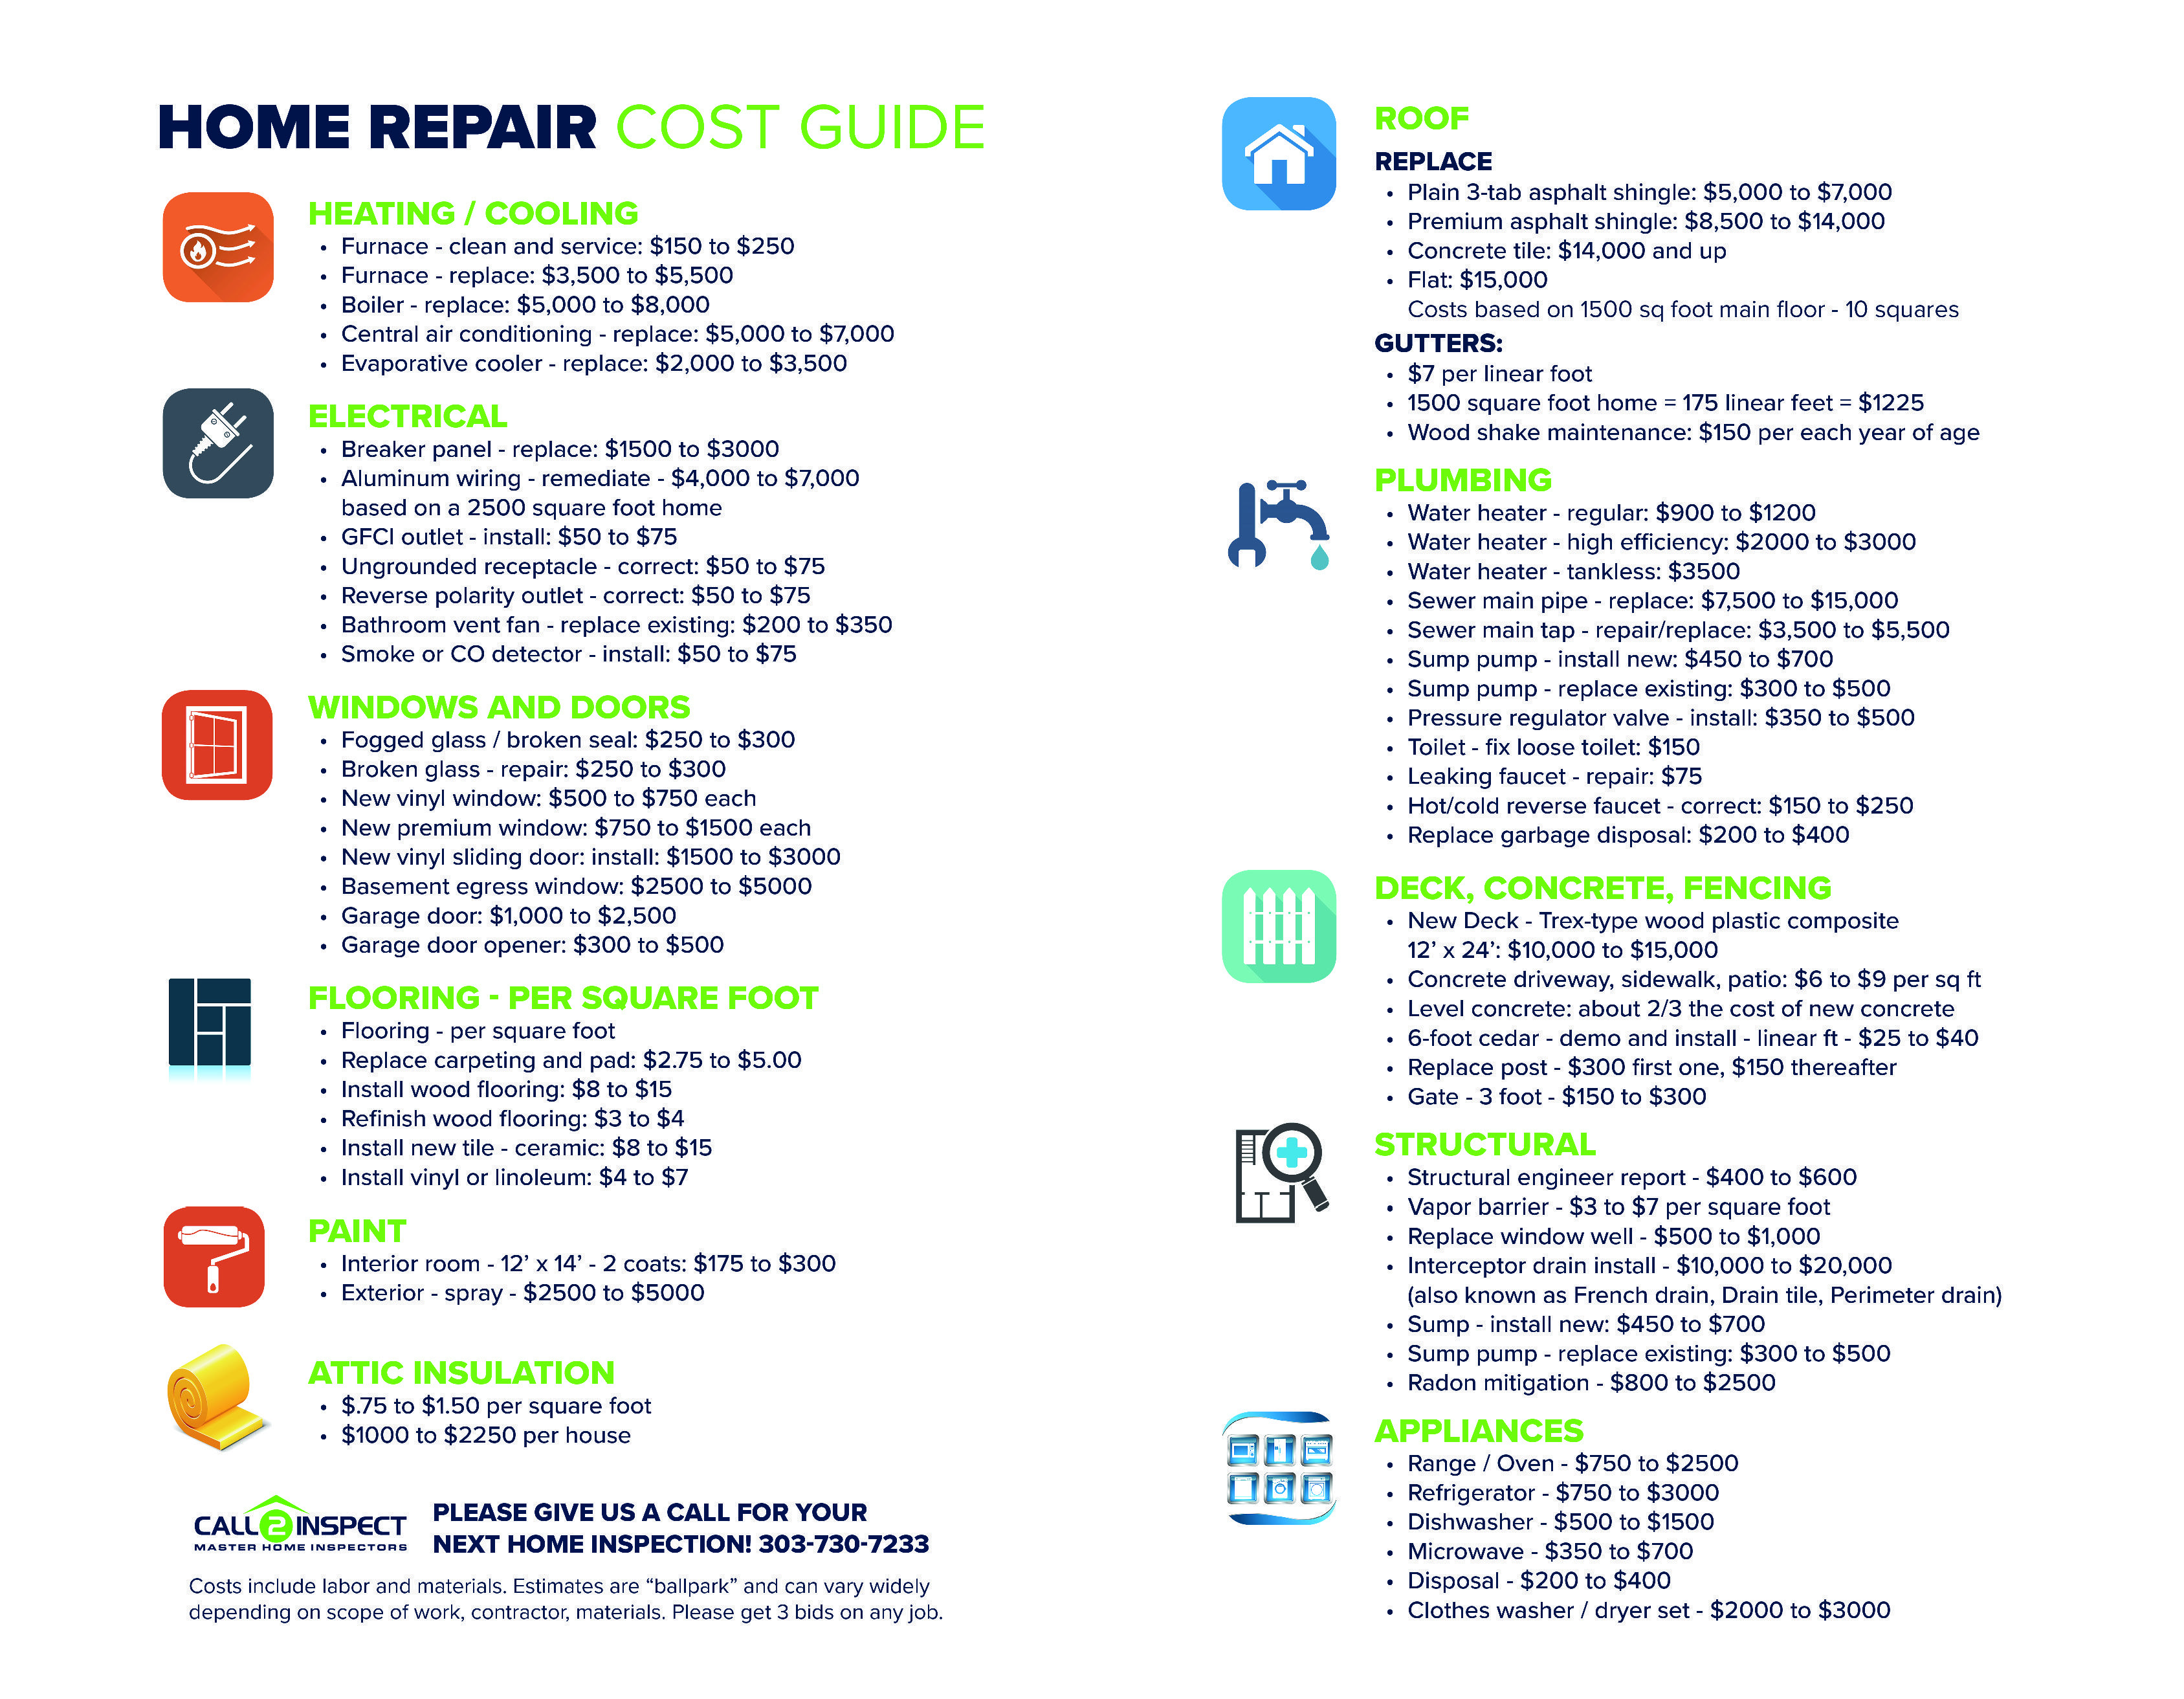 2018 Home Repair Cost Guide